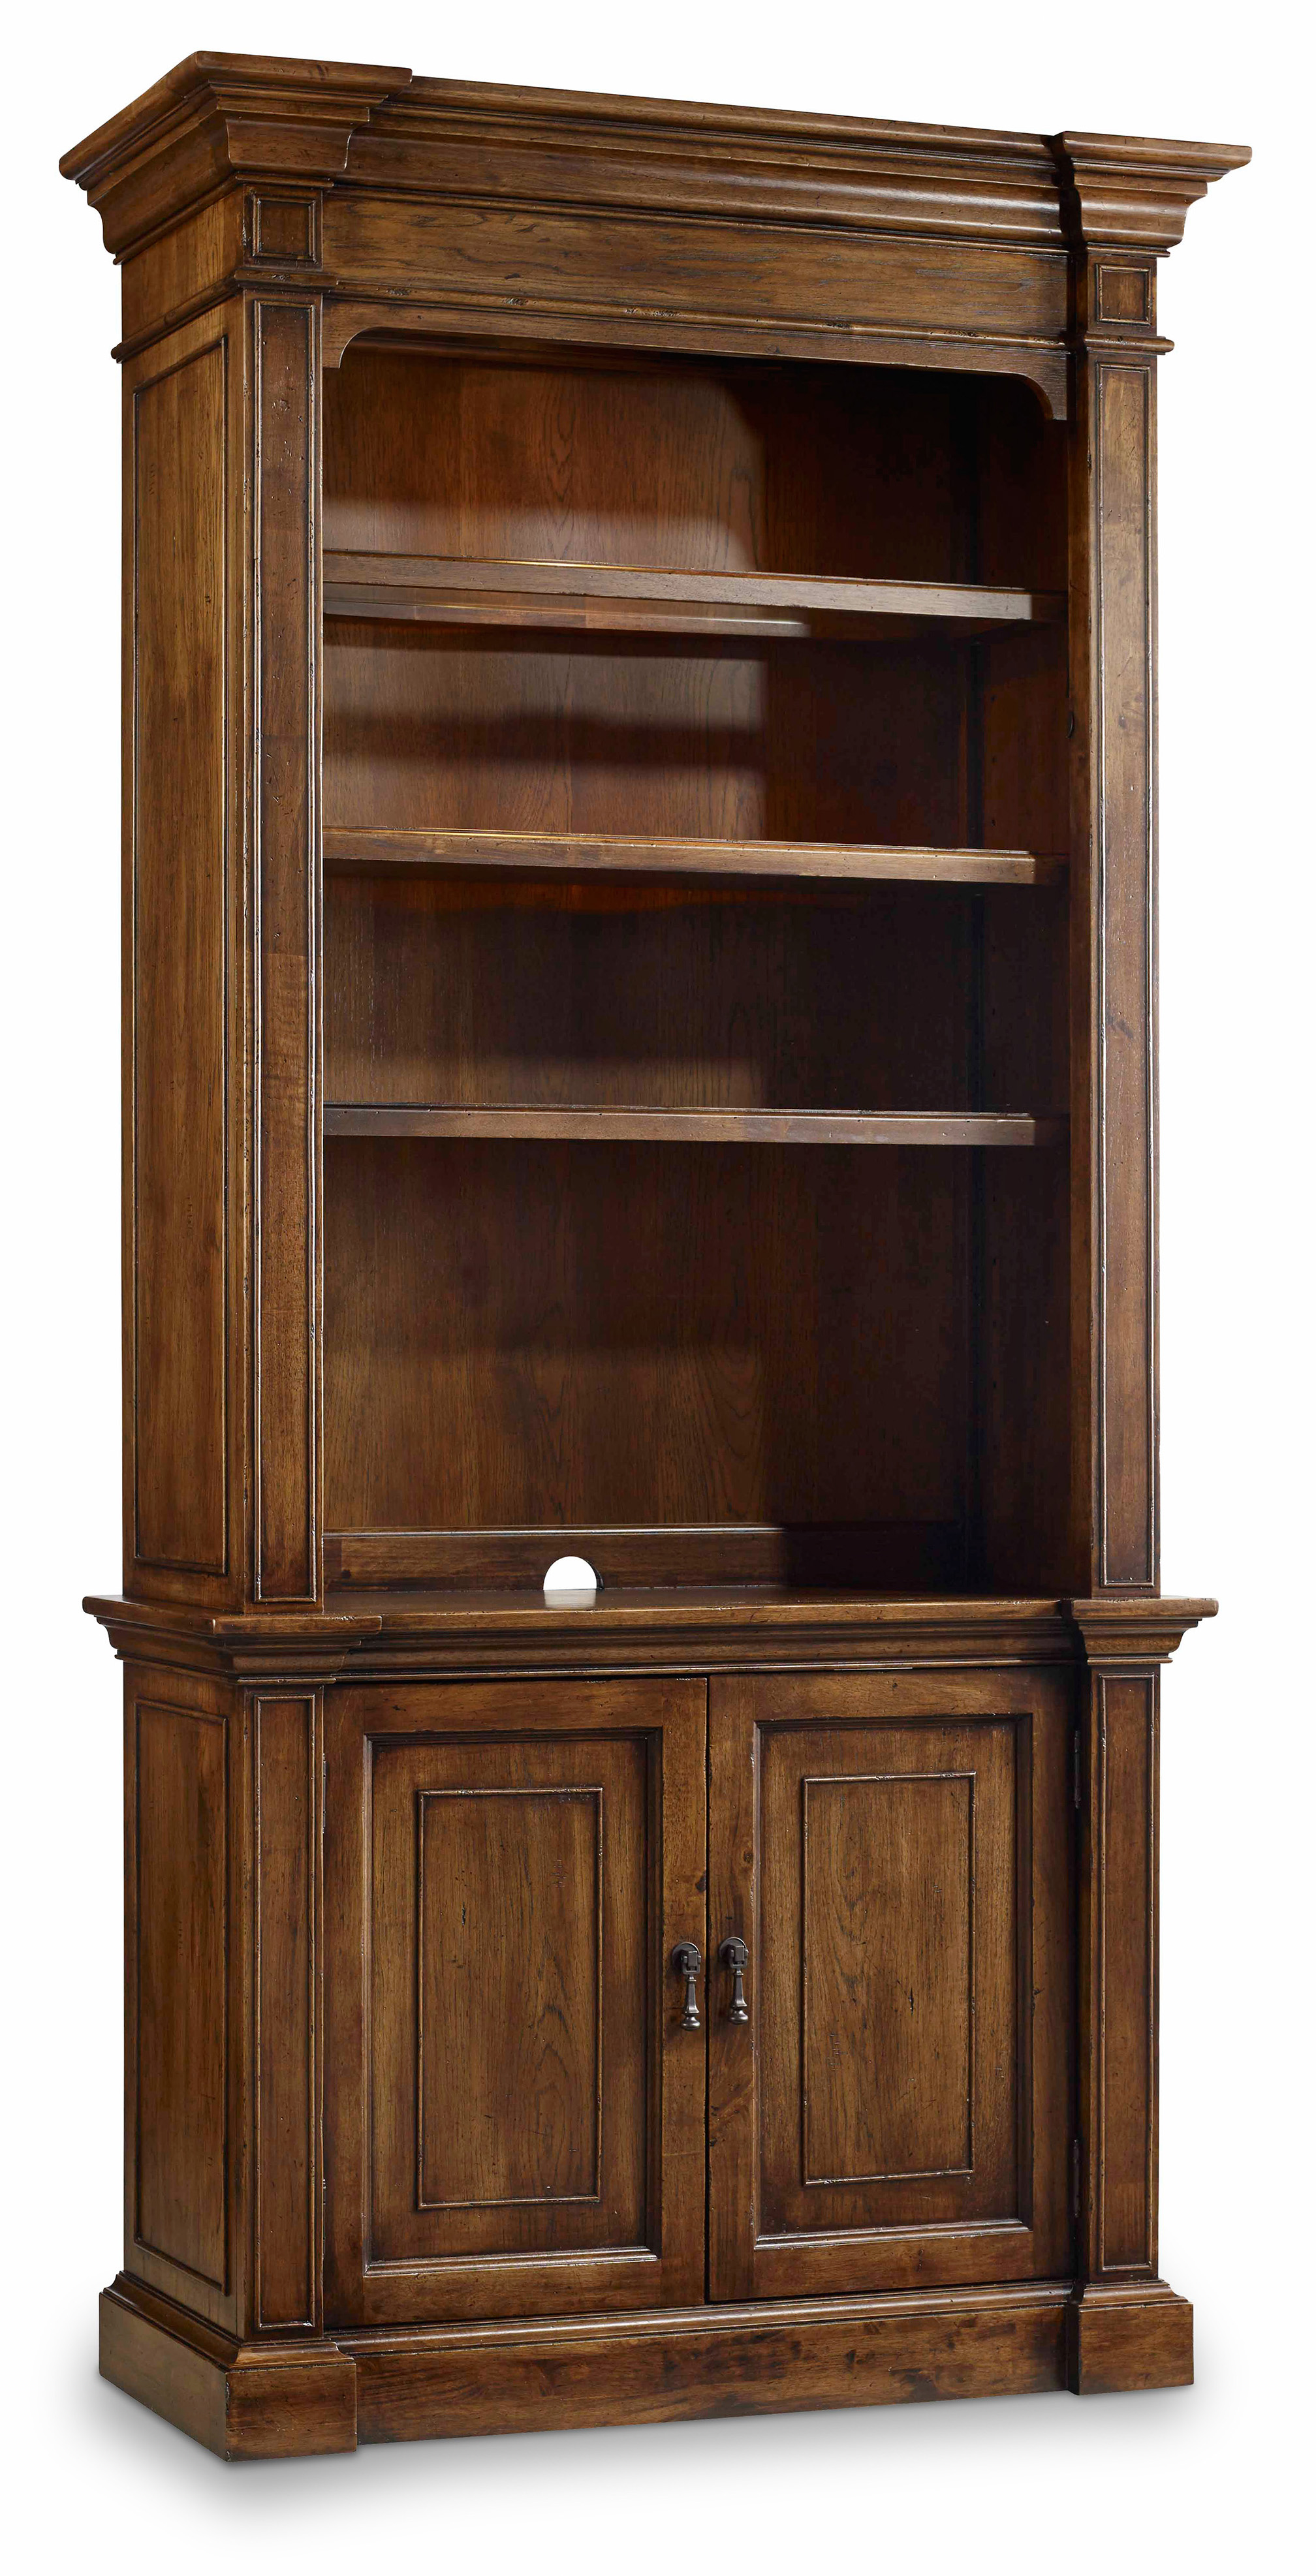 Hooker Furniture Archivist Bookcase - Item Number: 5447-10446